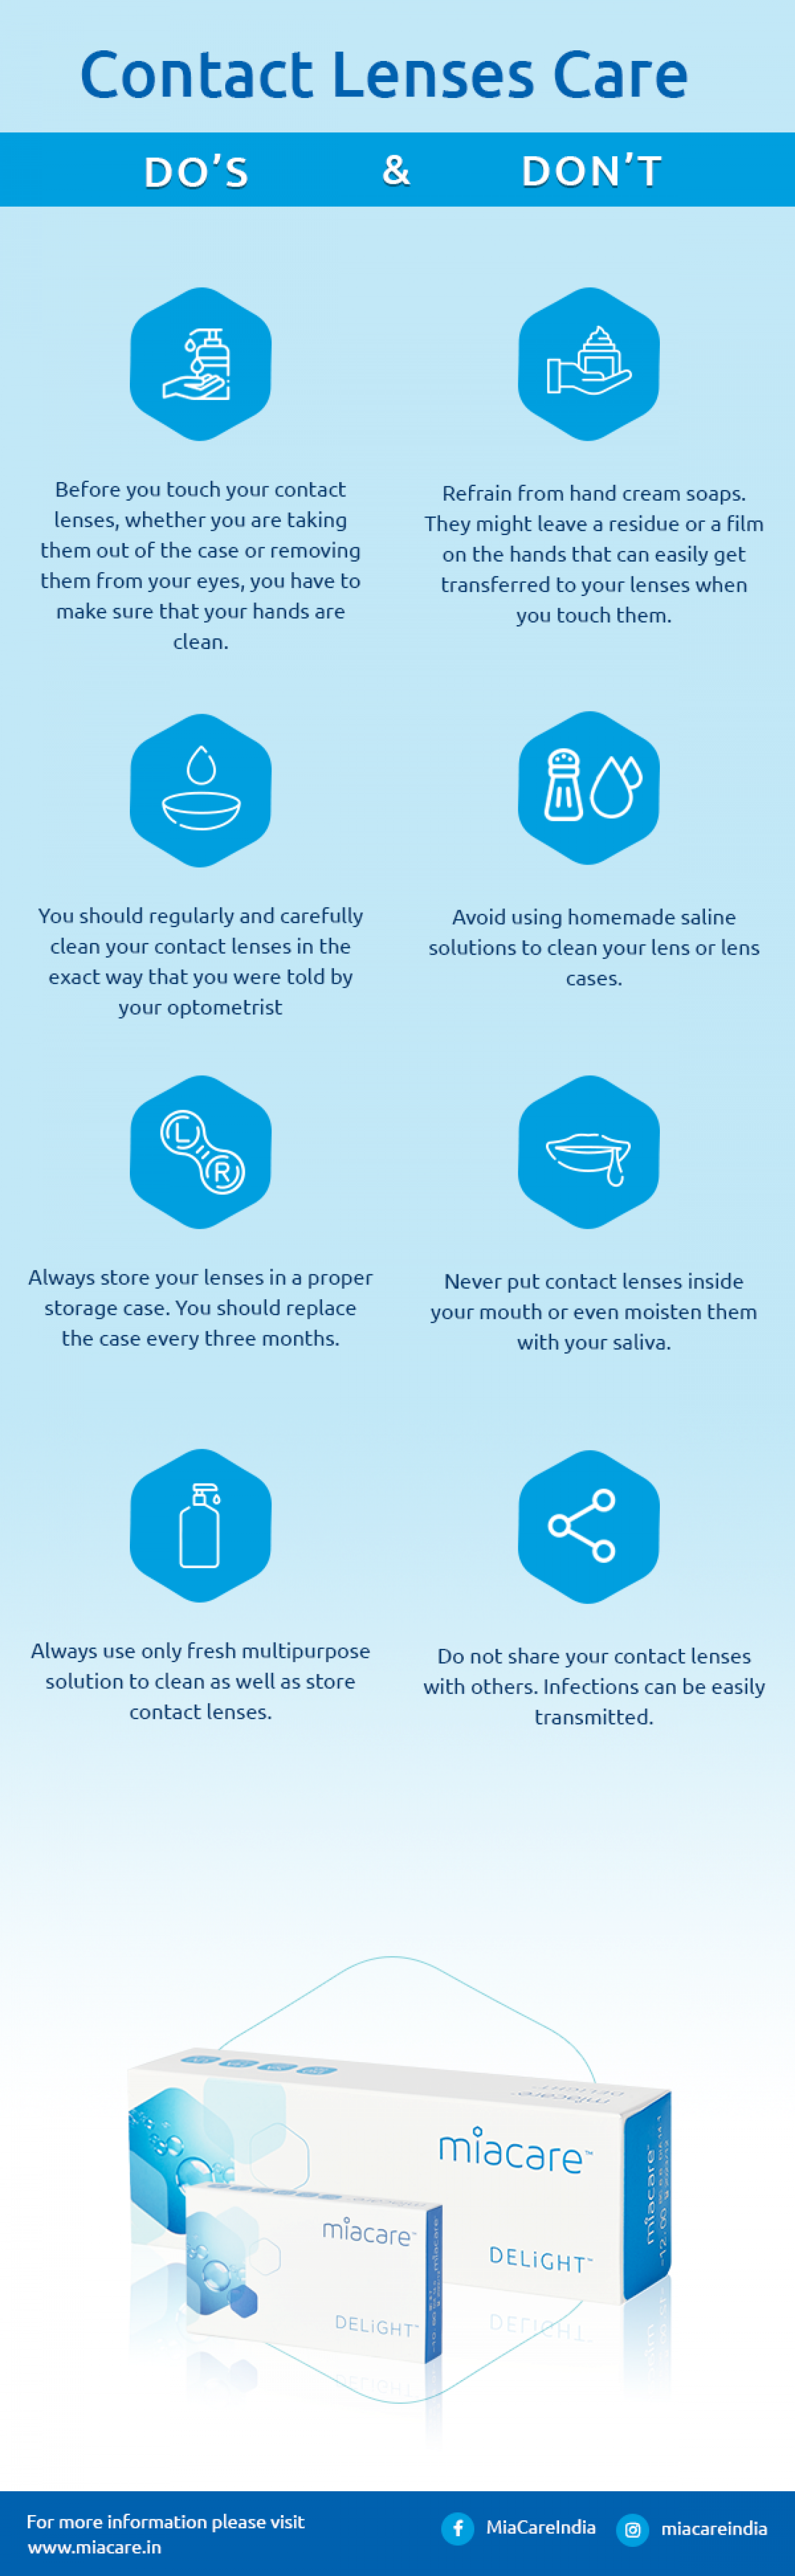 Contact Lenses Care: Do's and Don'ts Infographic